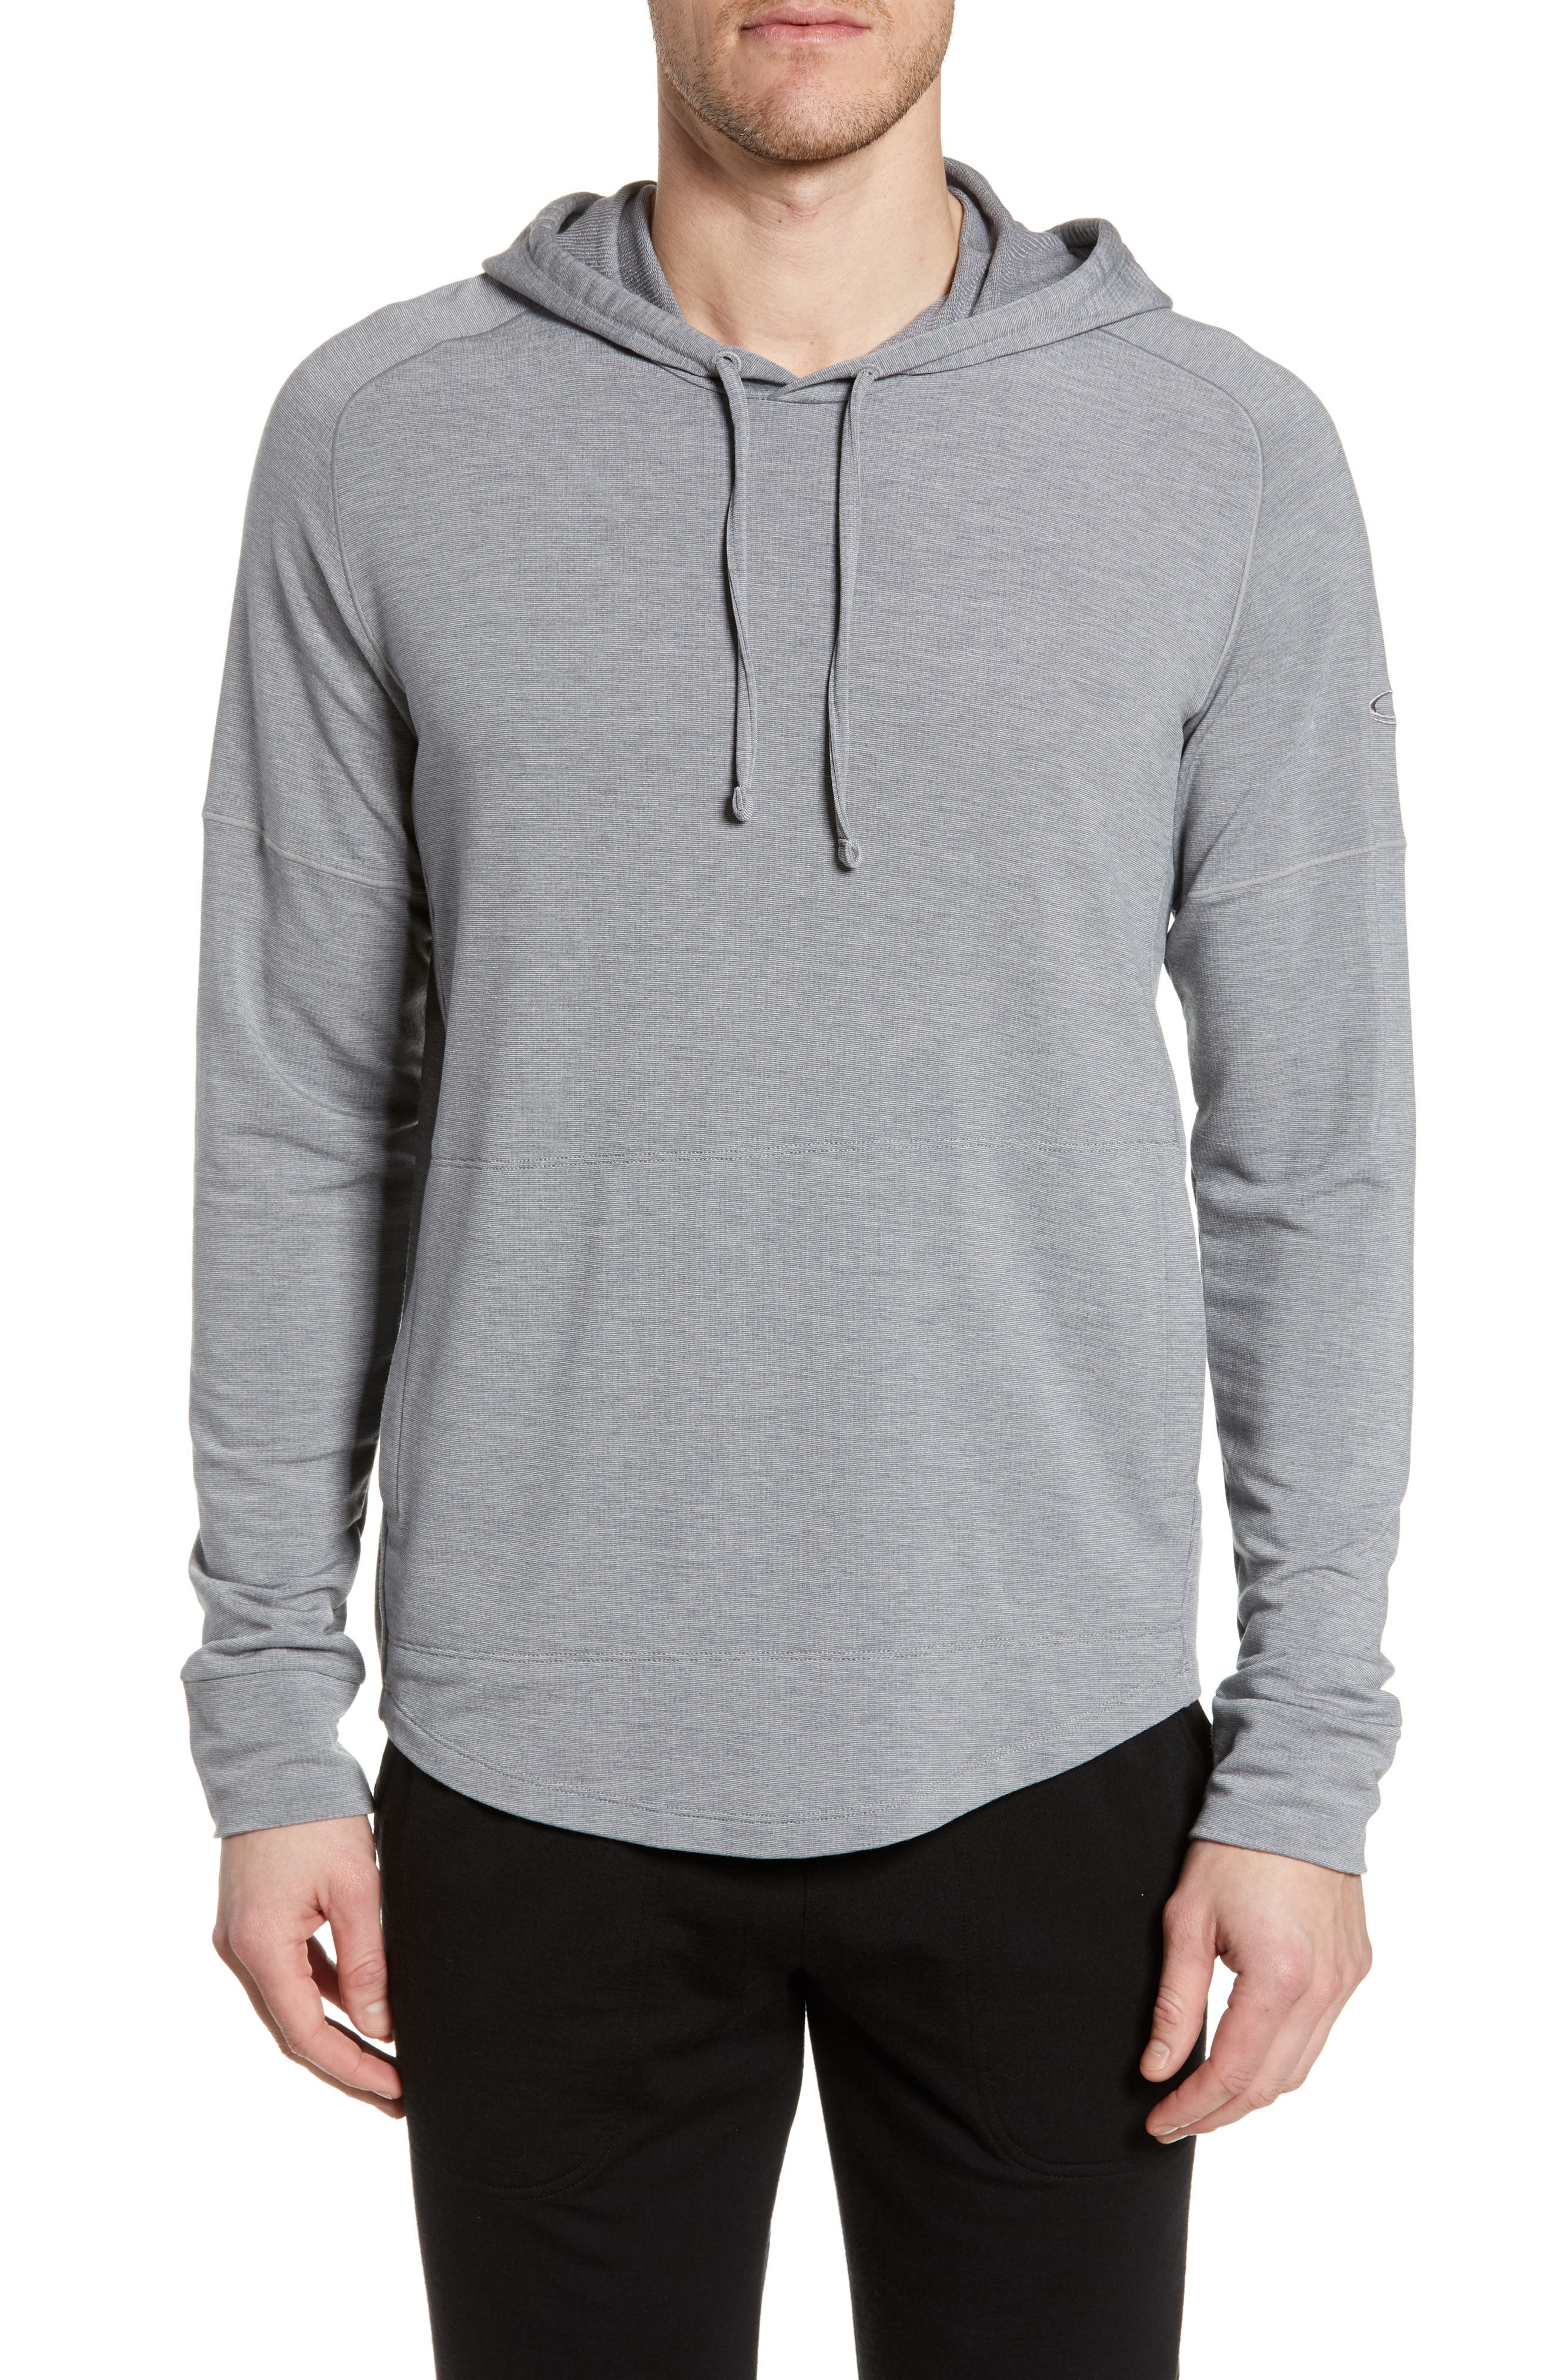 ICEBREAKER Momentum Hoodie, Main, color, FOSSIL/ SNOW HEATHER